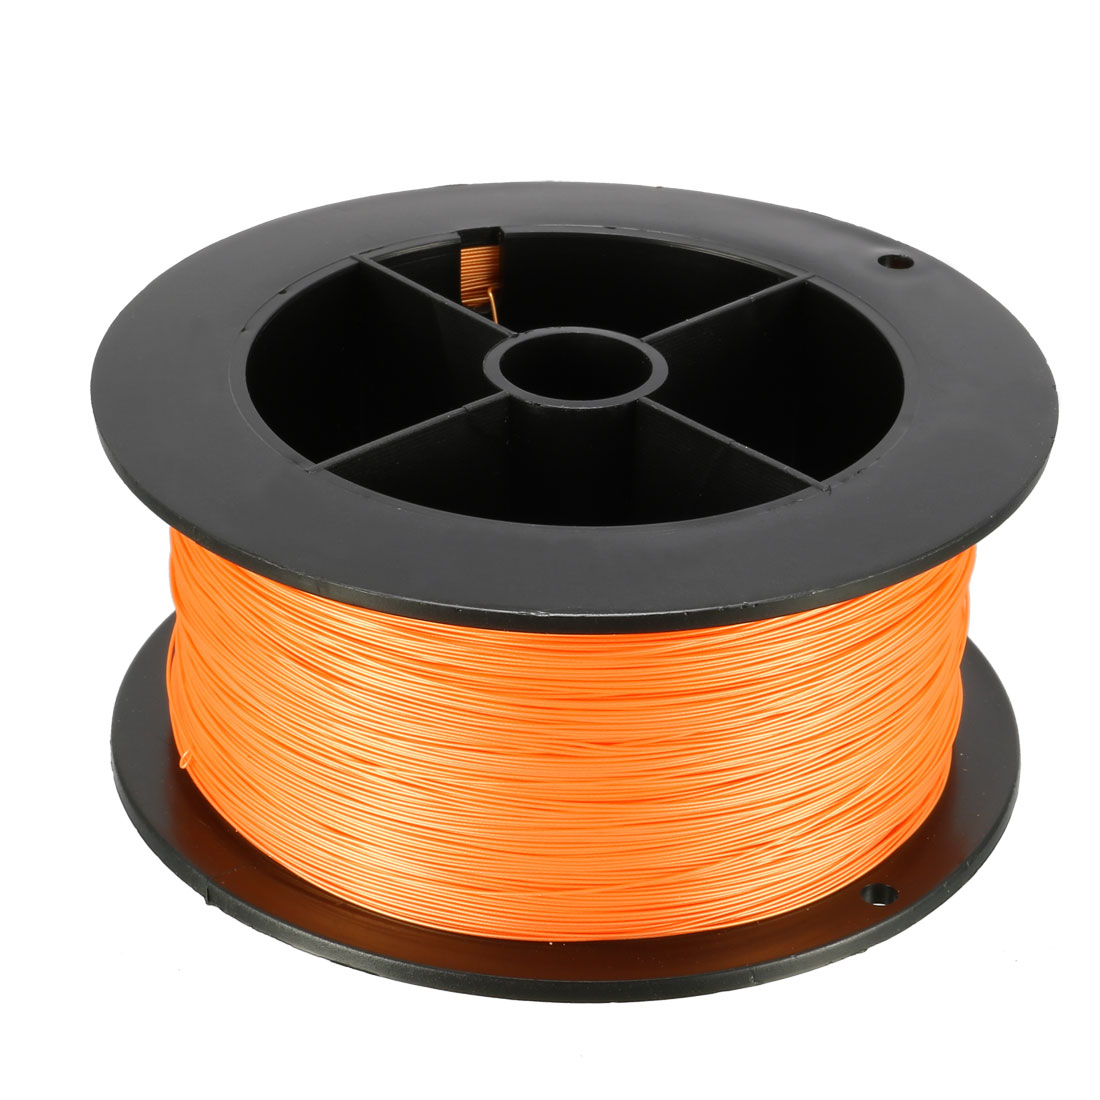 984.2FT Breadboard Wrapping Wire PCB Solder Silver Plated Copper Cable Orange